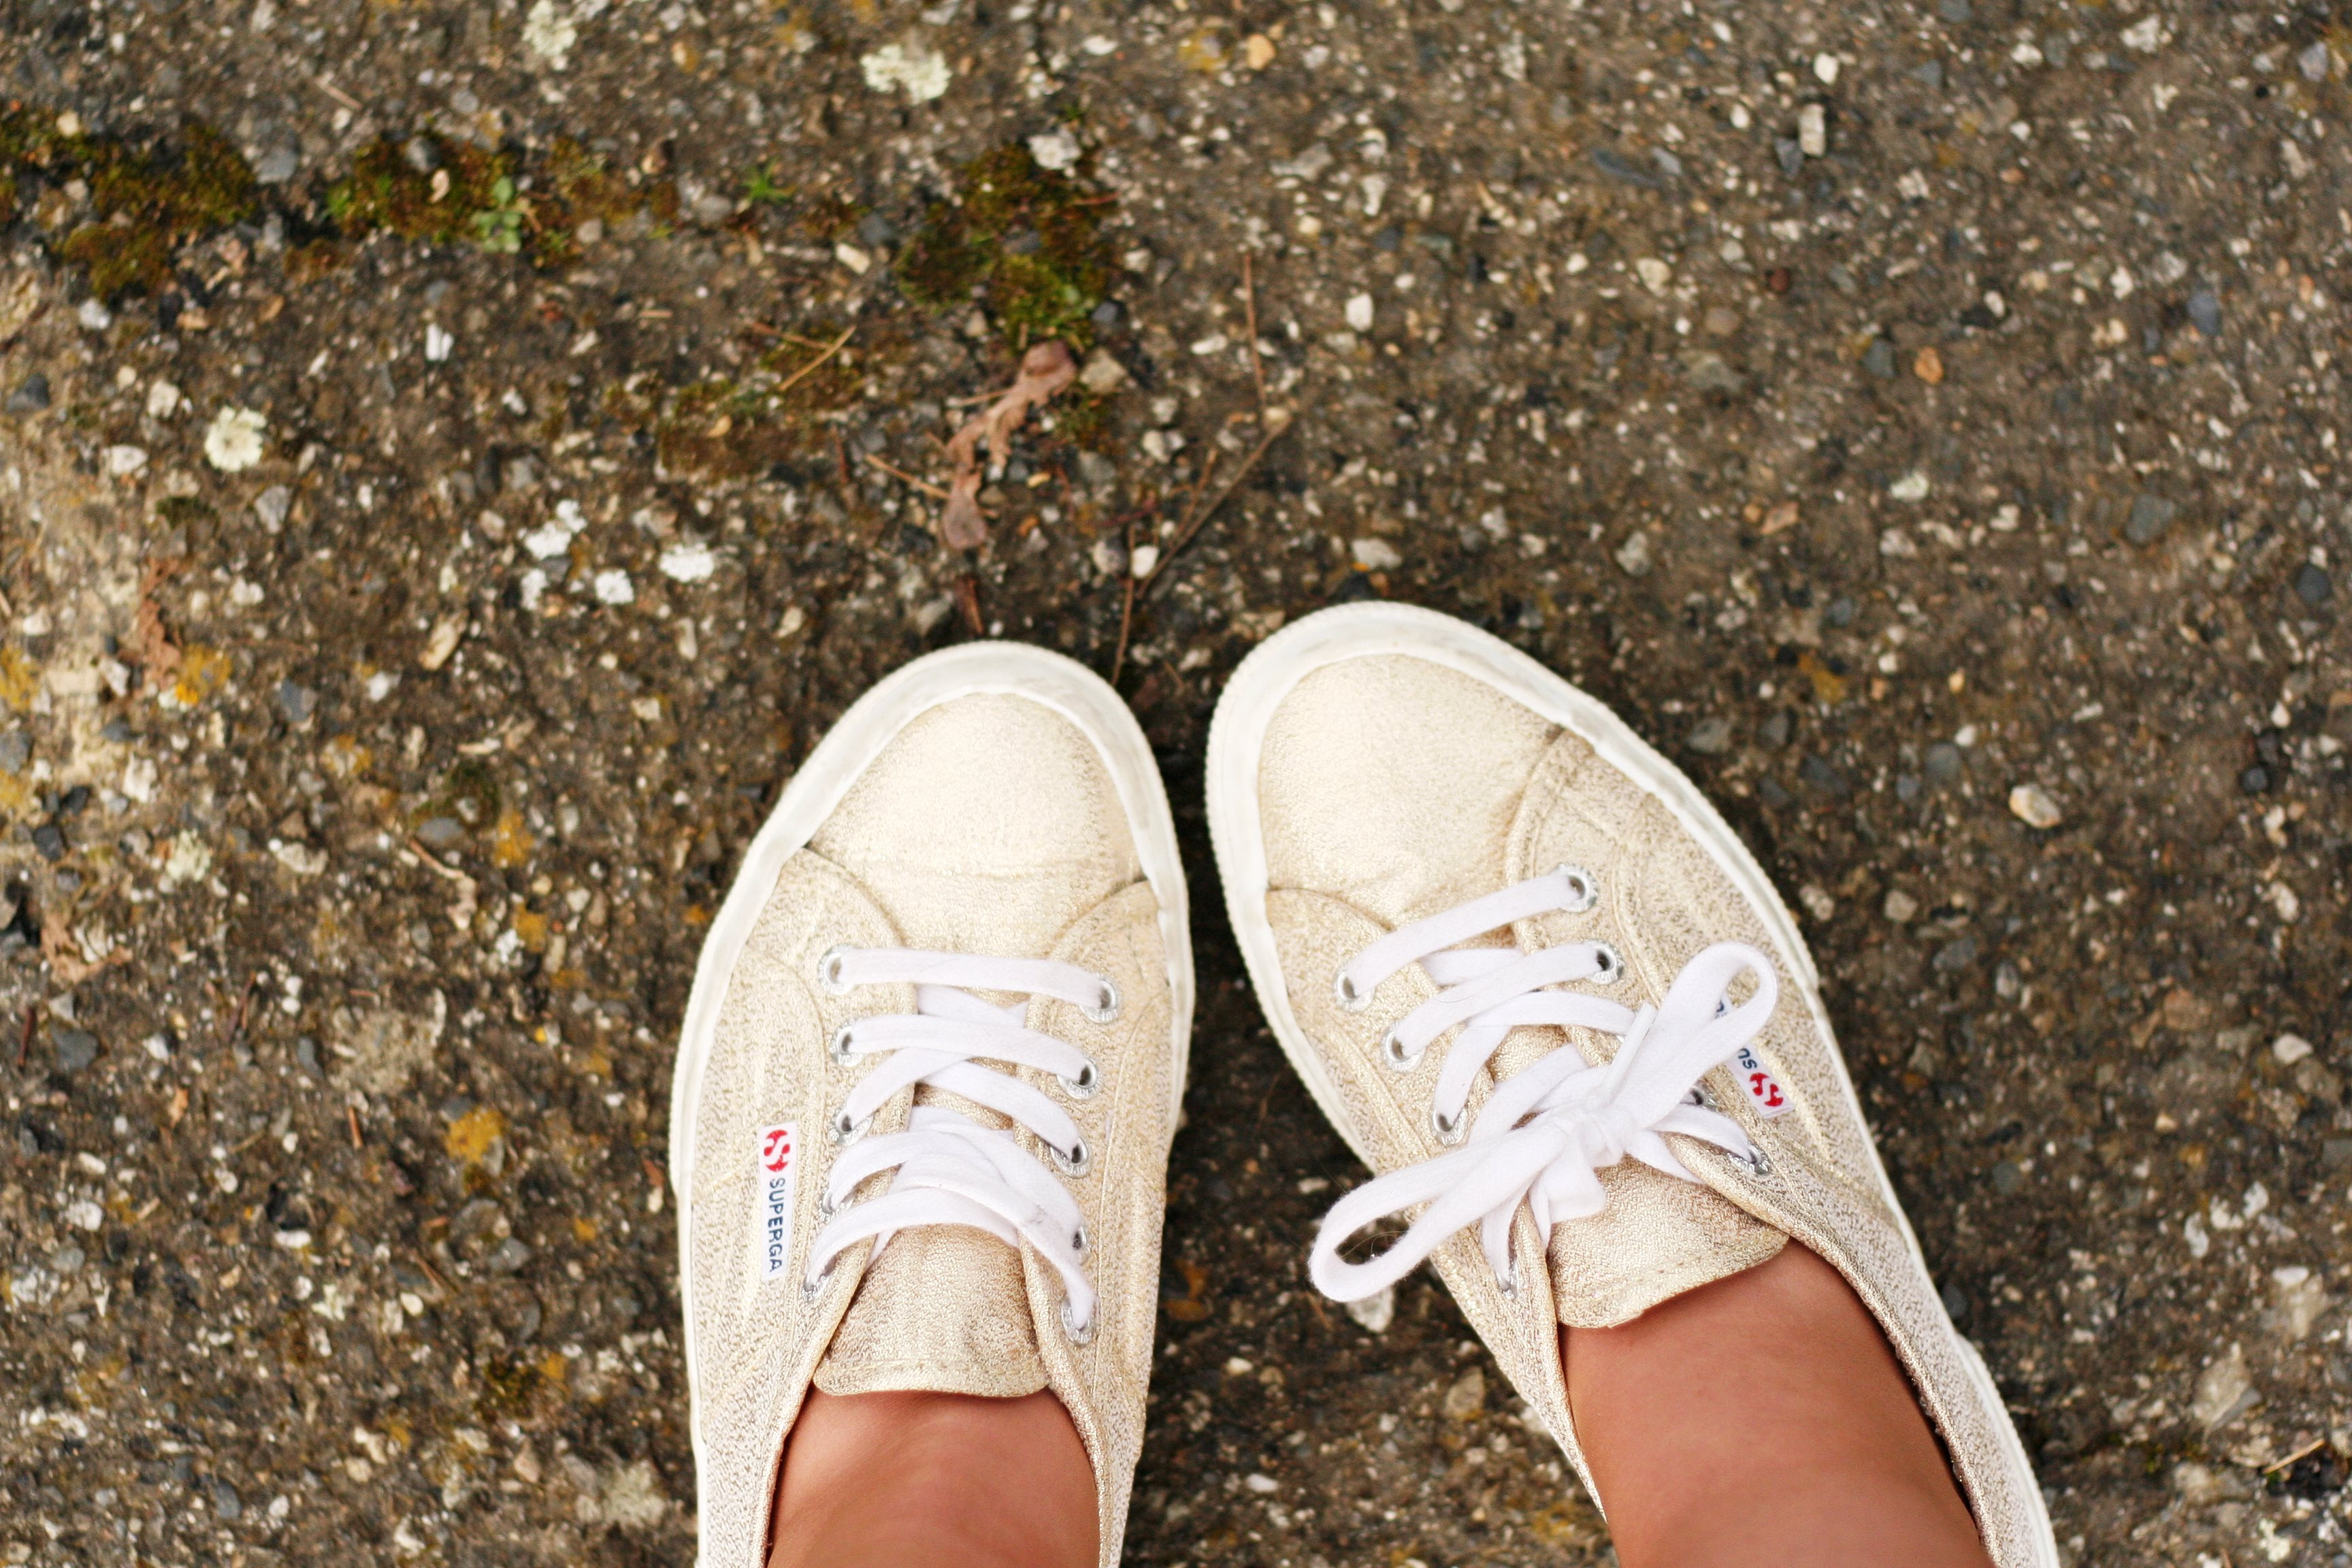 baskets-superga-look-superga-stella-mccartney-blog-mode-marie-sixtine-blog-mode